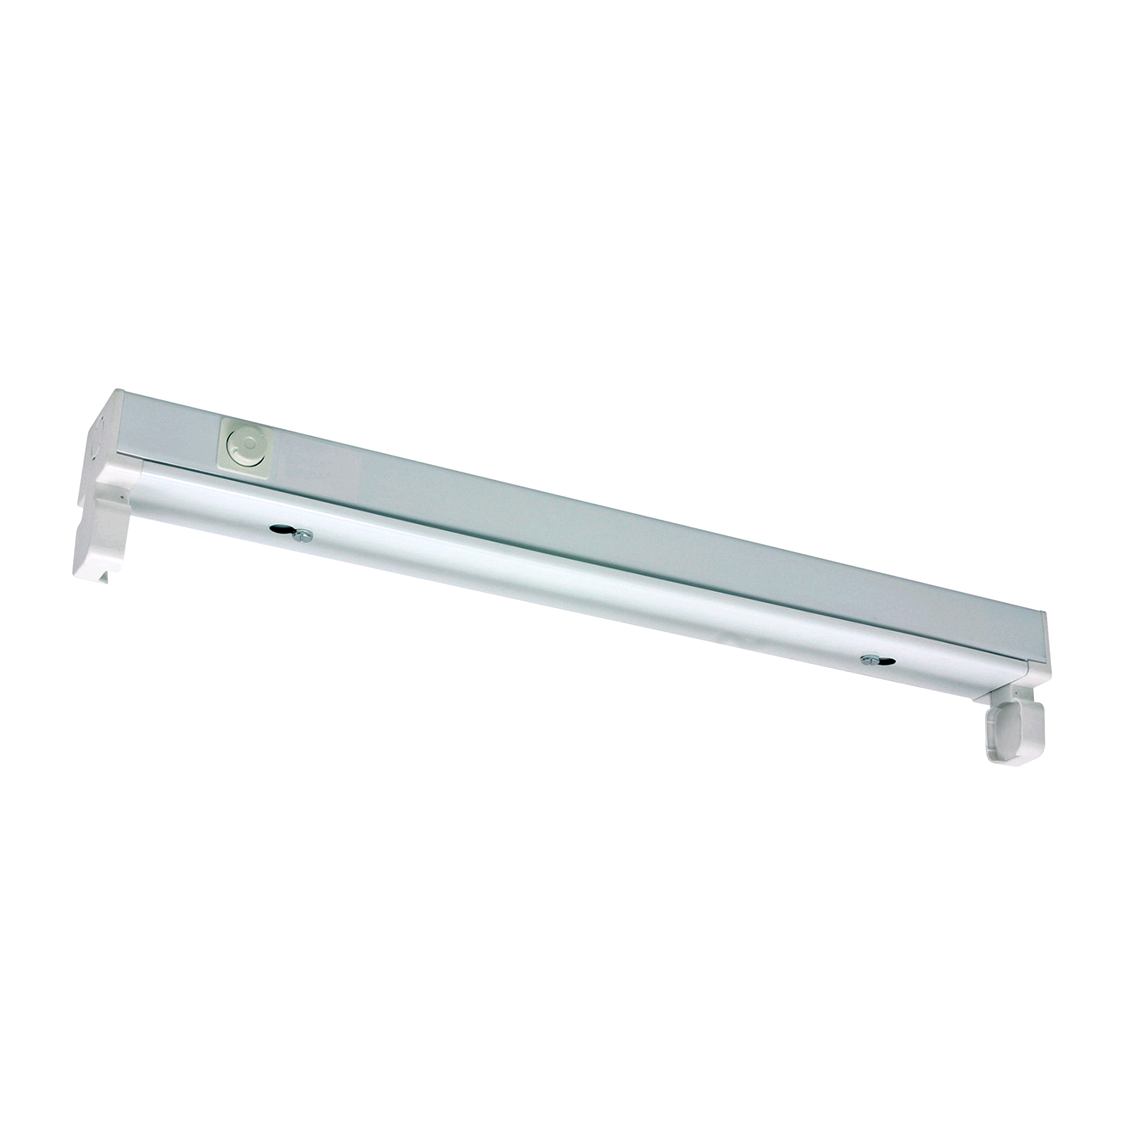 CED Empty Batten Housing For LED Tubes 5ft